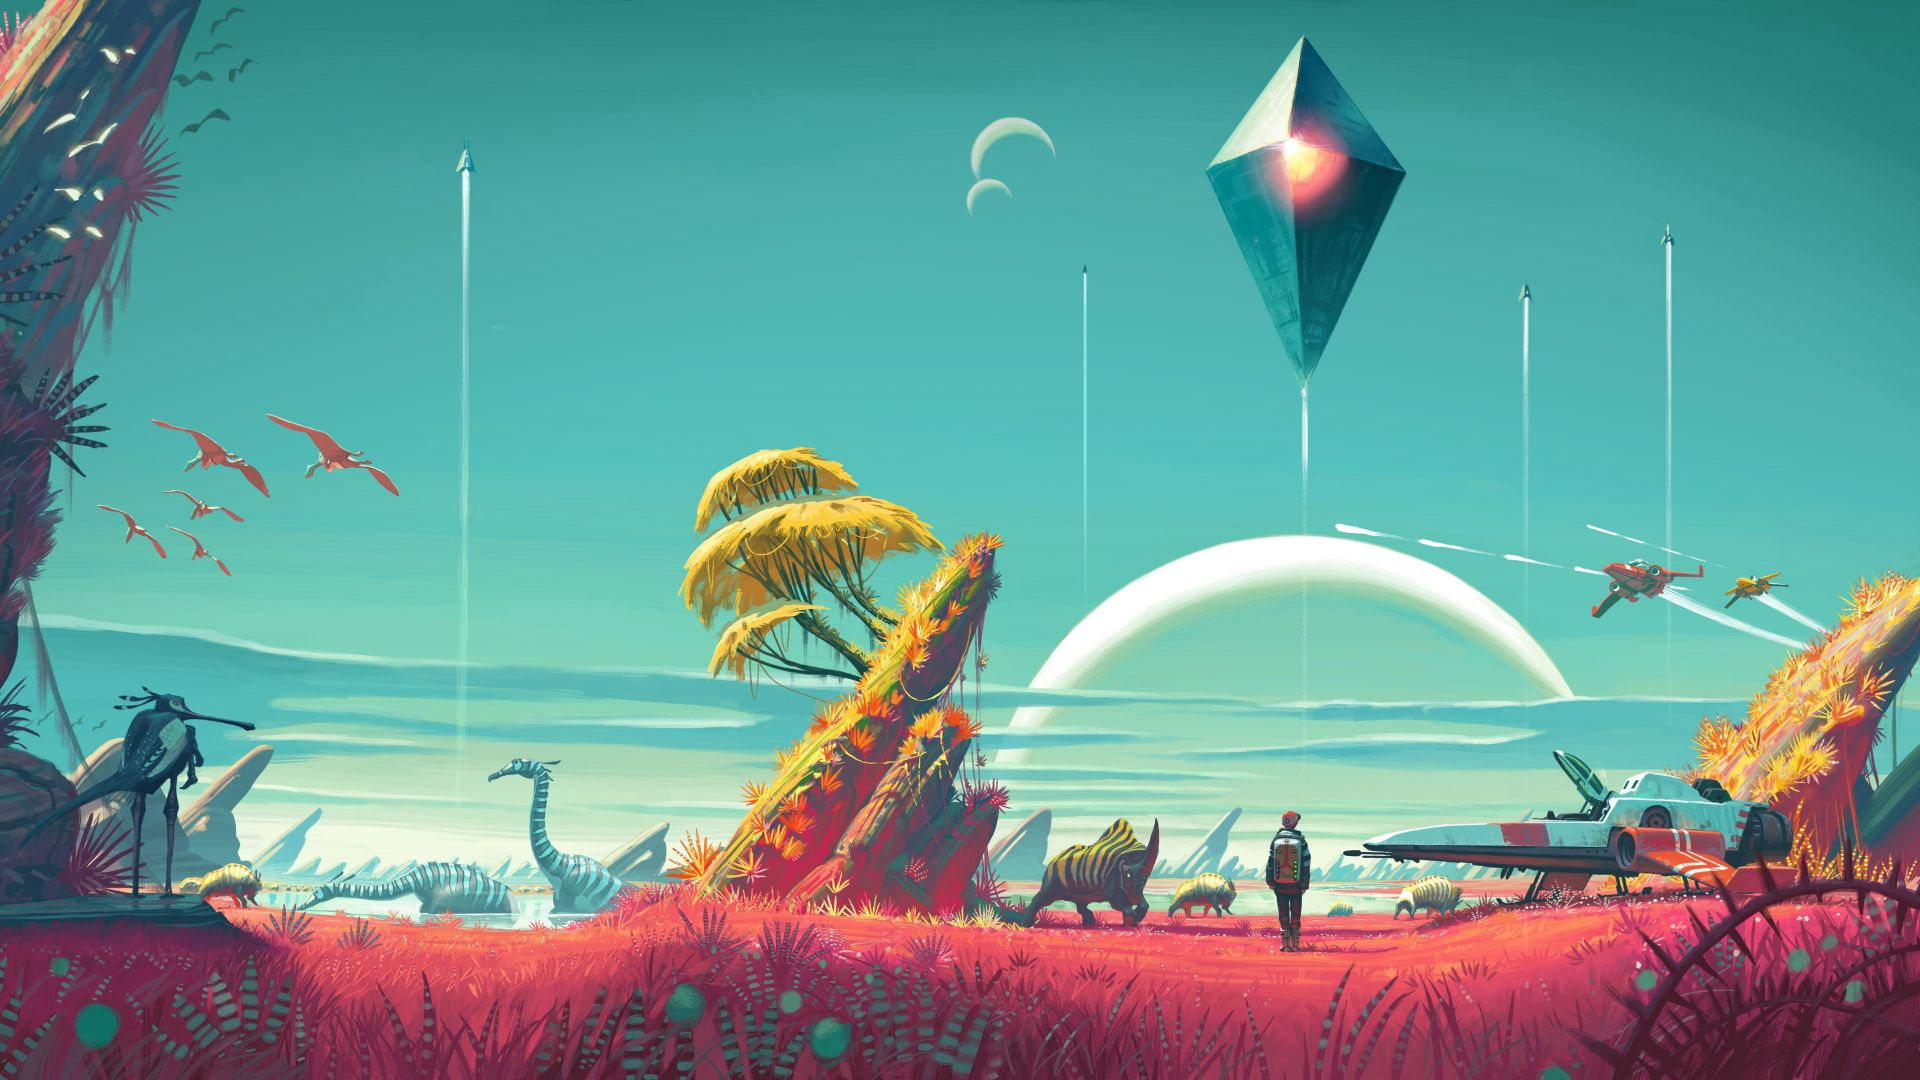 No Man's Sky, 4k, 5k, Лучшие игры 2015, игра, фантастика, космос, фентези, ПК, PS4, No Man's Sky, 4k, 5k wallpaper, Best Games 2015, game, sci-fi, space, fantasy, PC, PS4 (horizontal)